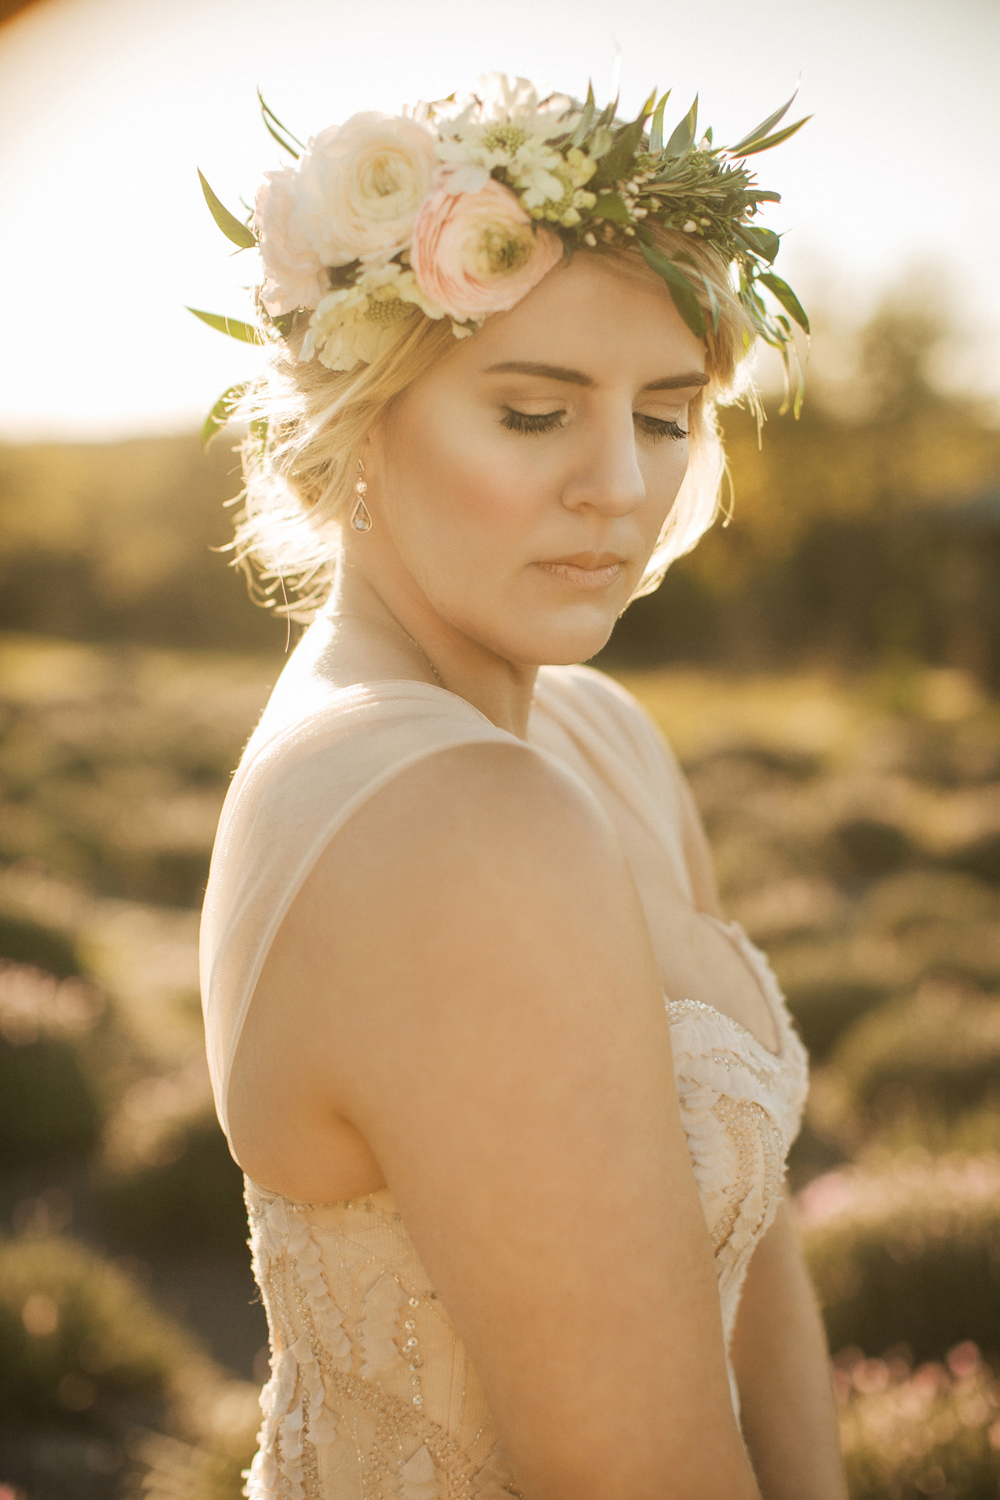 Coming up with Claire's bridal makeup was so laid back and effortless. She knew she wanted something very natural; glowy skin, golden eyeshadow, but we also had a lot of fun experimenting with the boho dots.